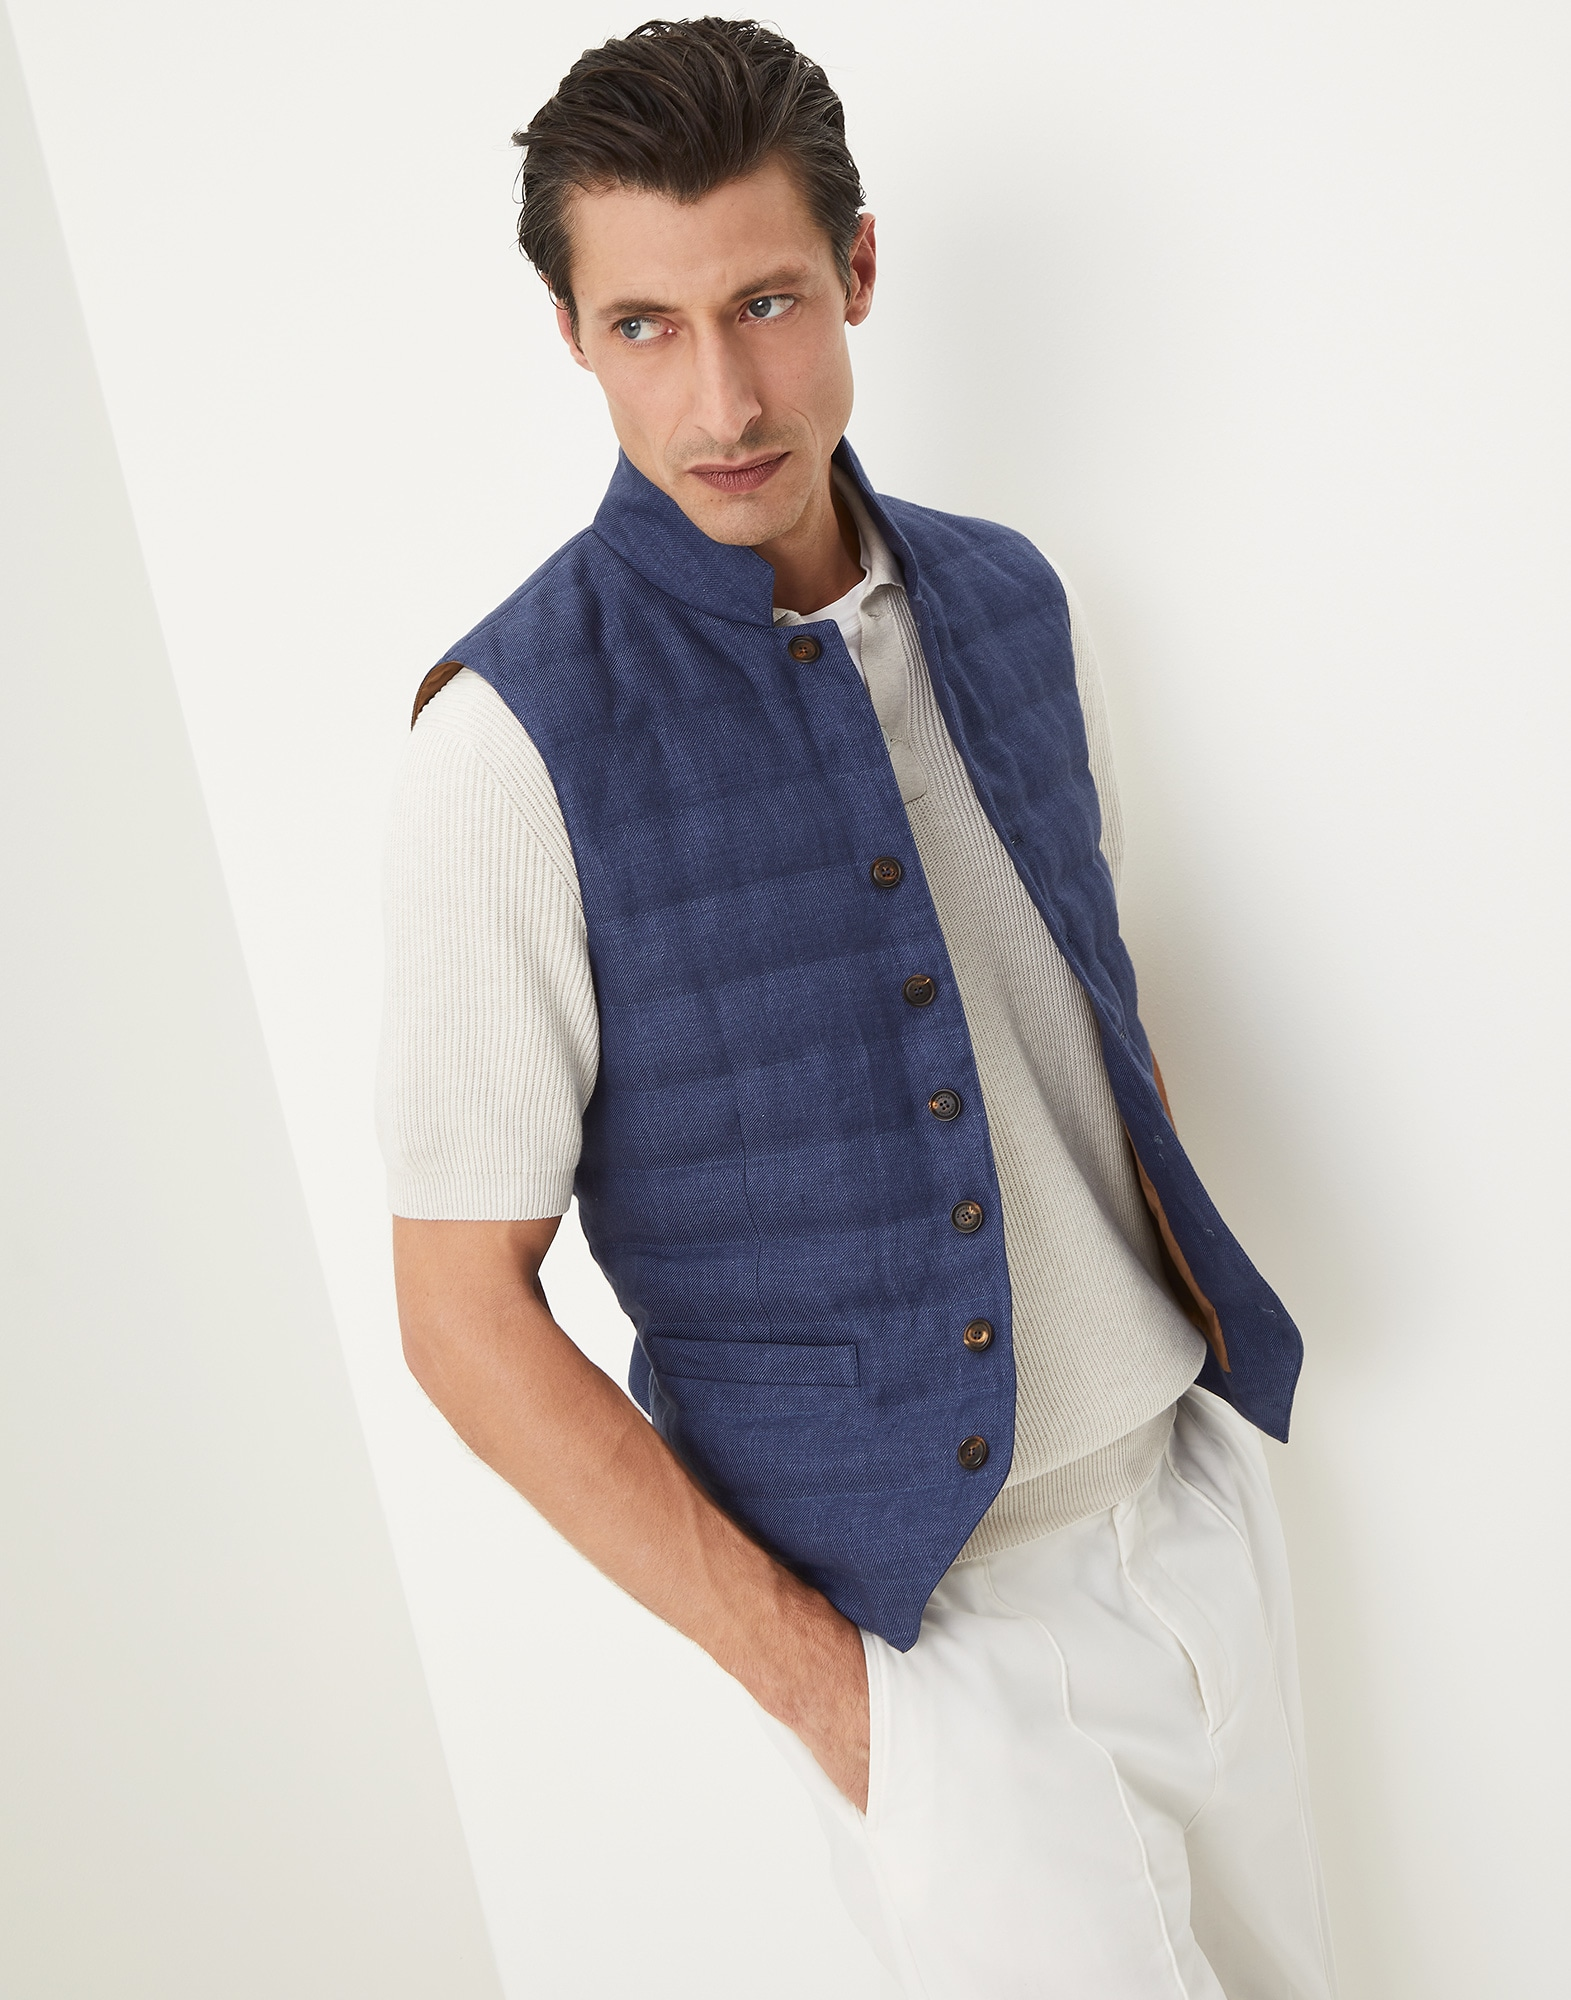 Down Vest - Editorial